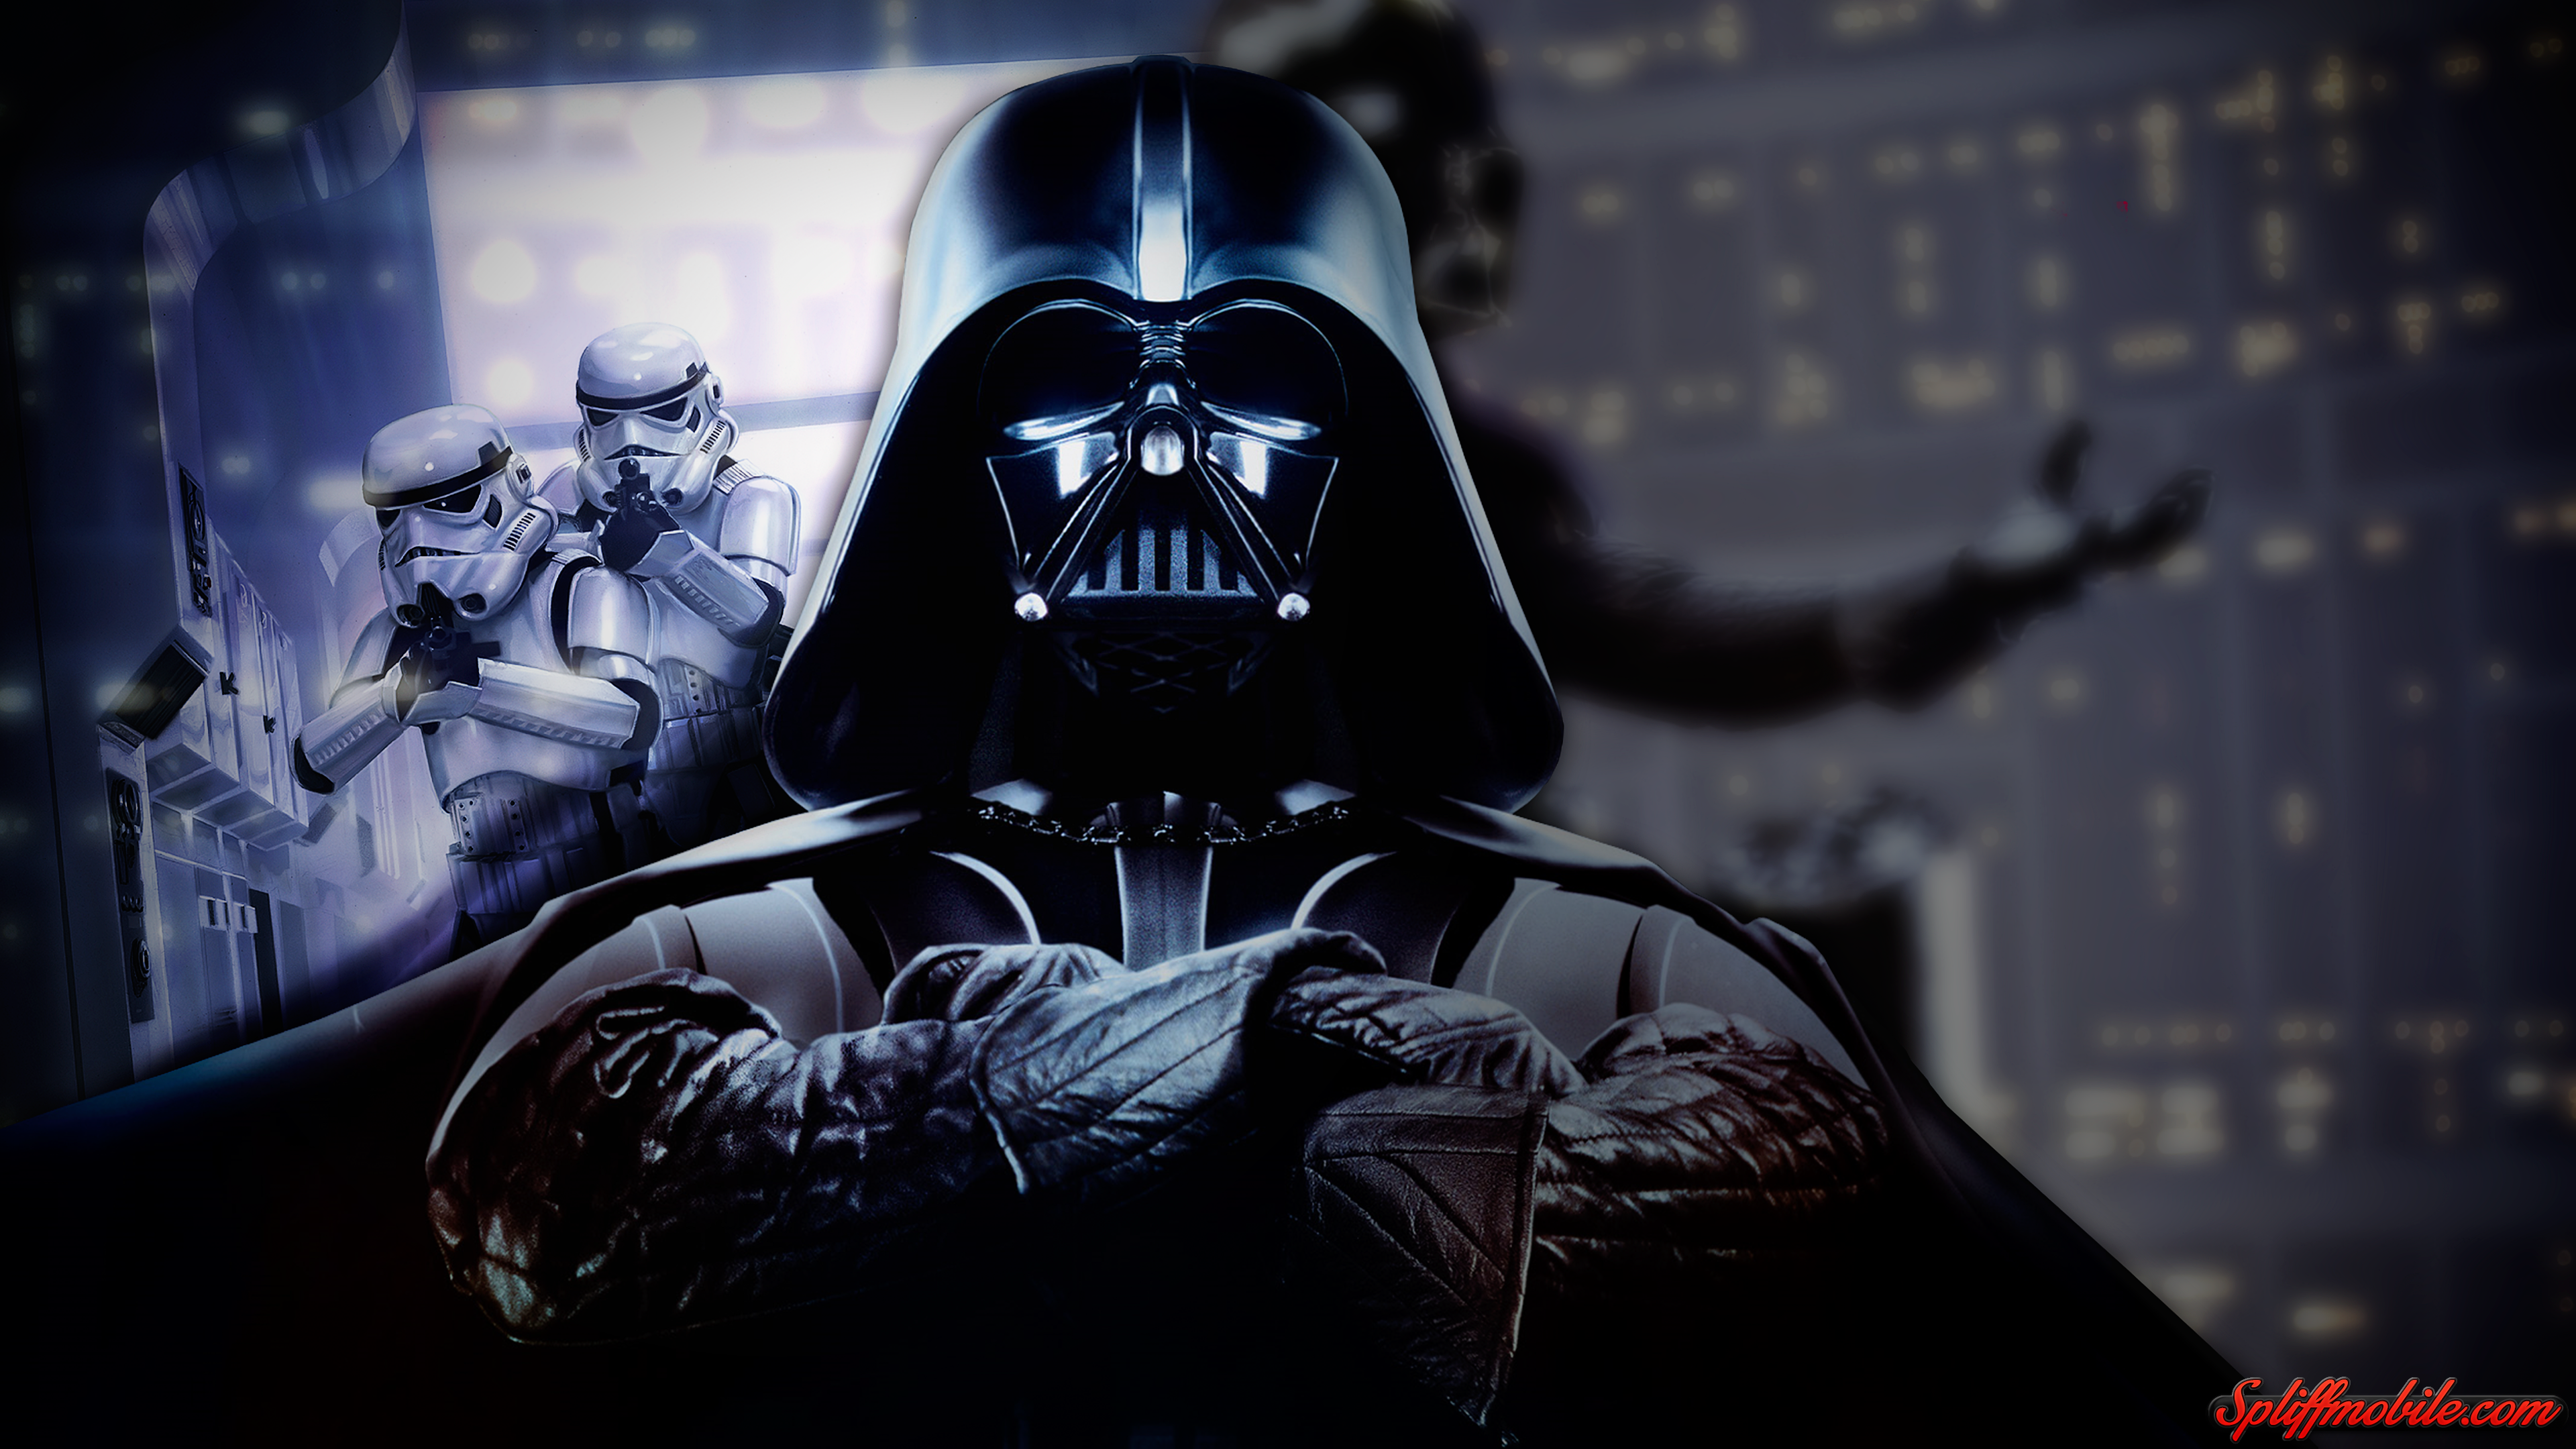 HD Darth Vader Wallpaper